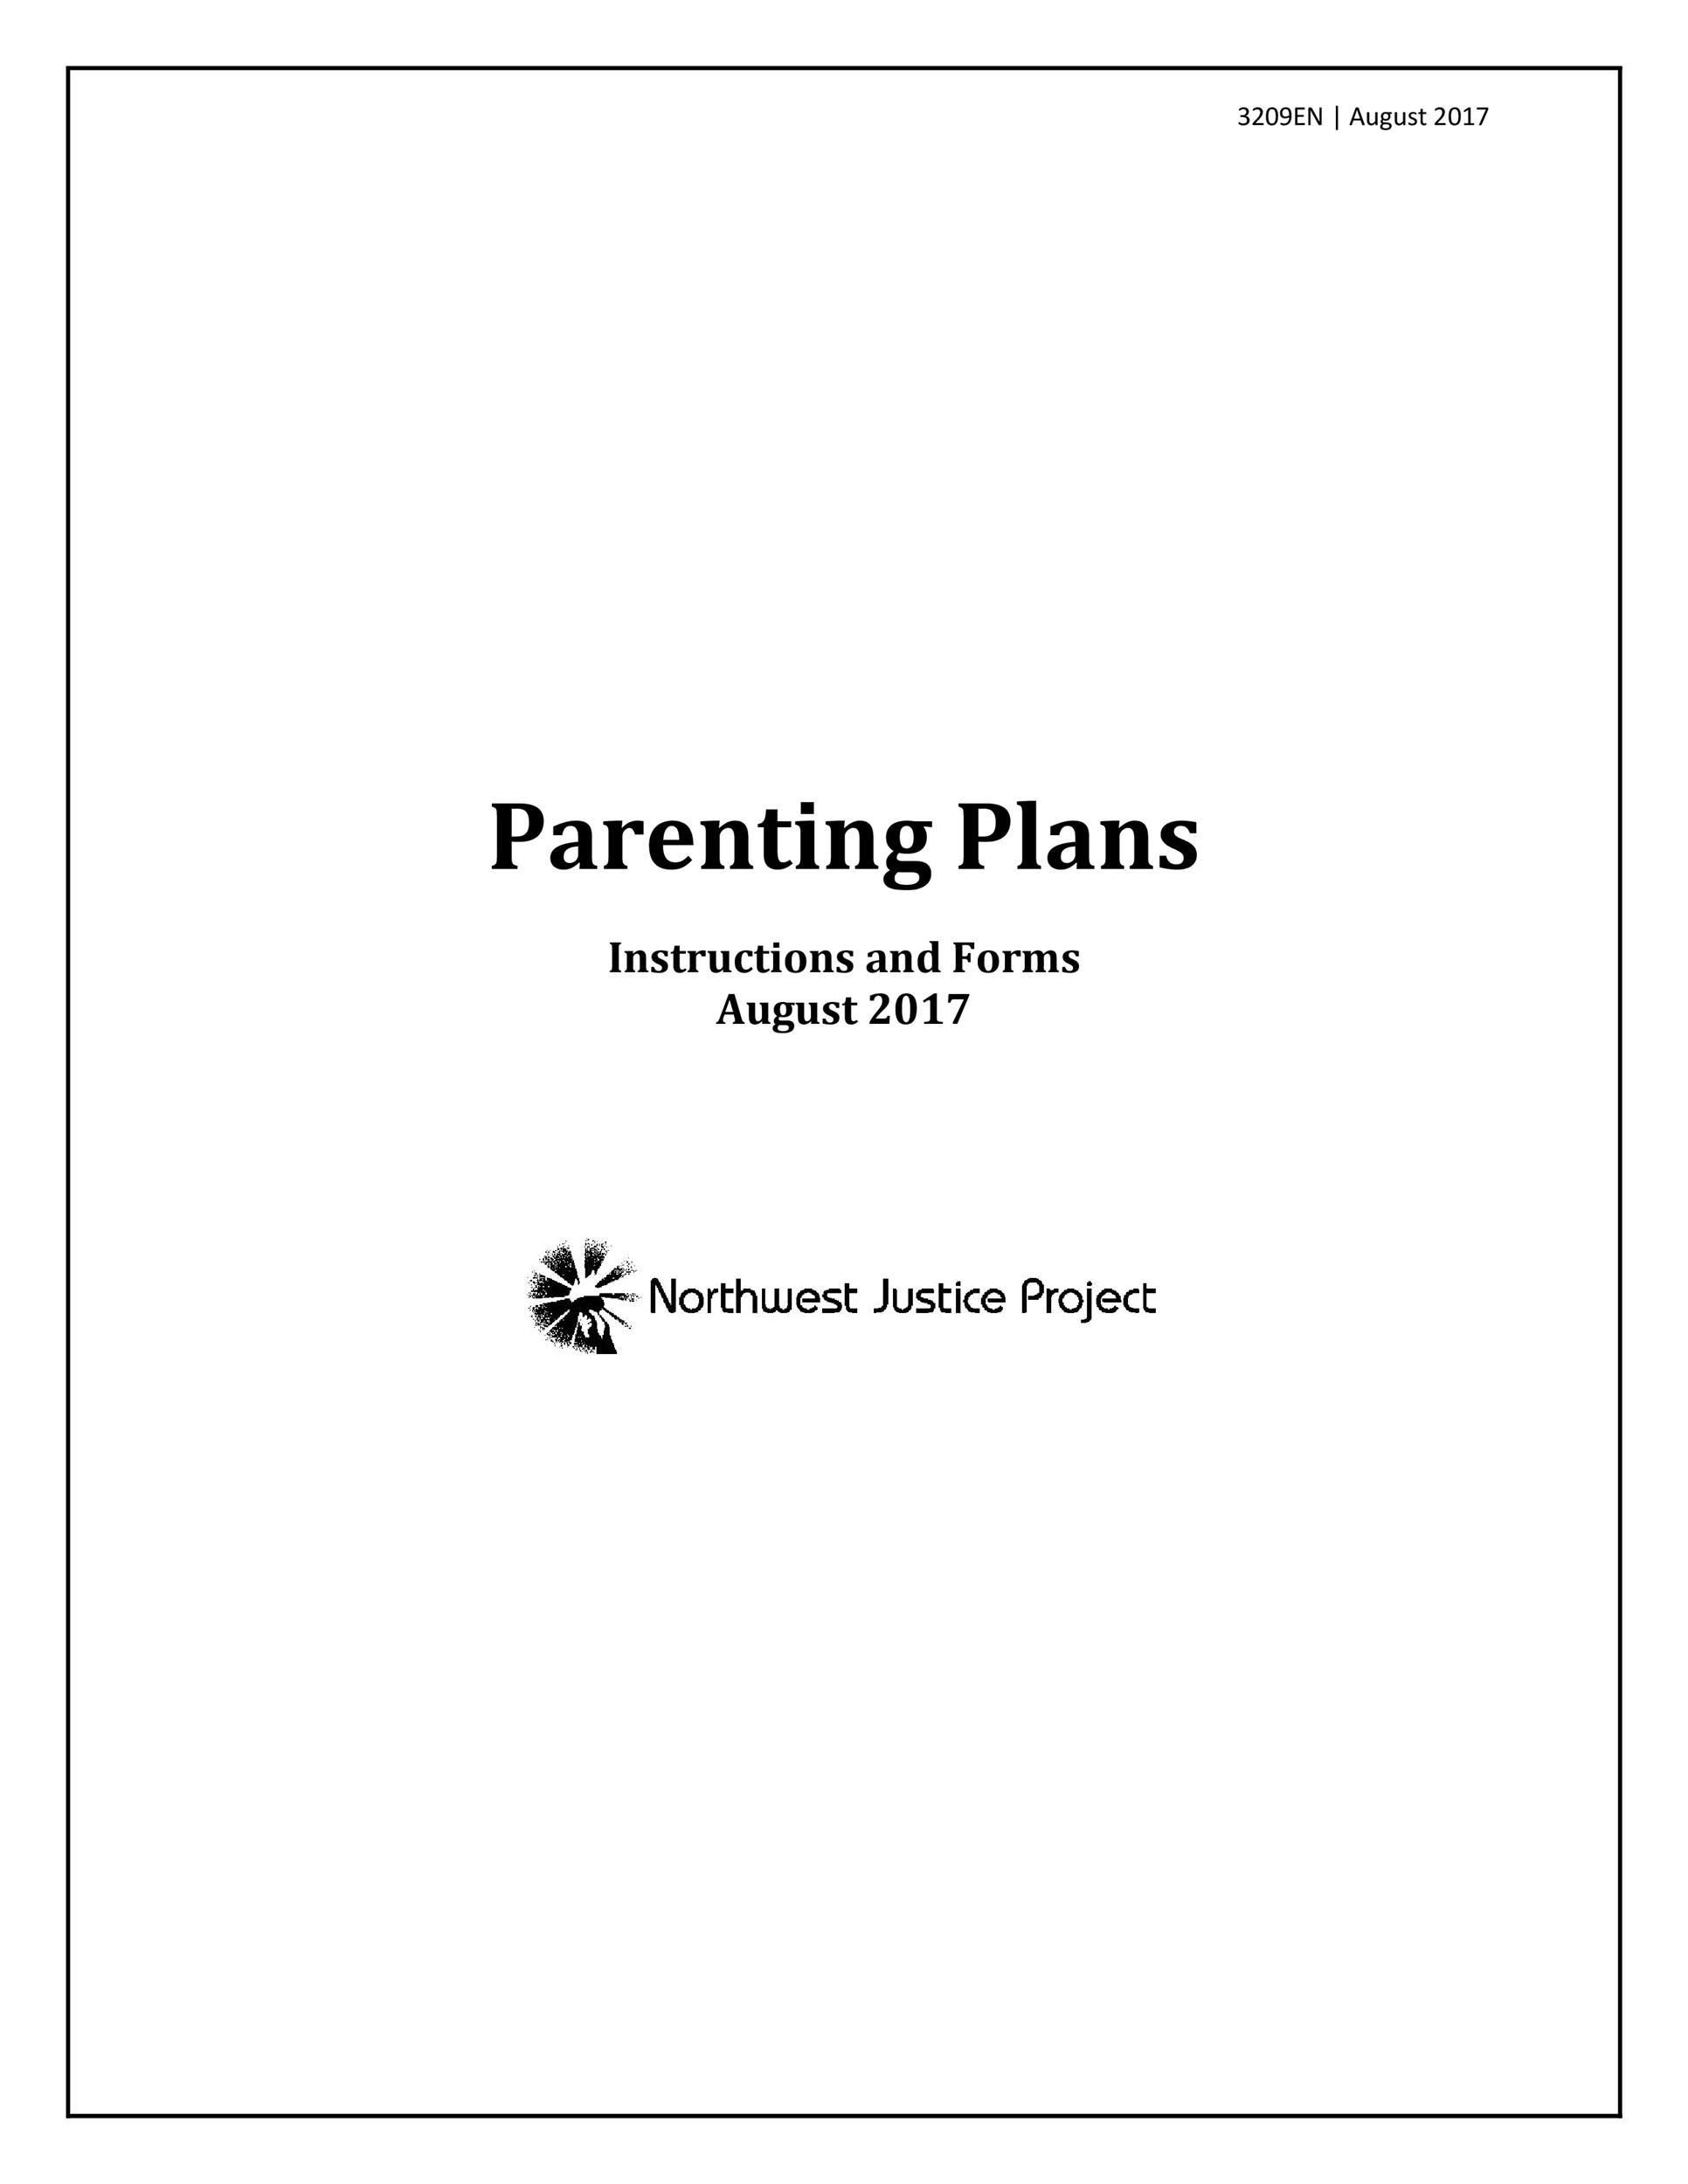 Free parenting plan template 42